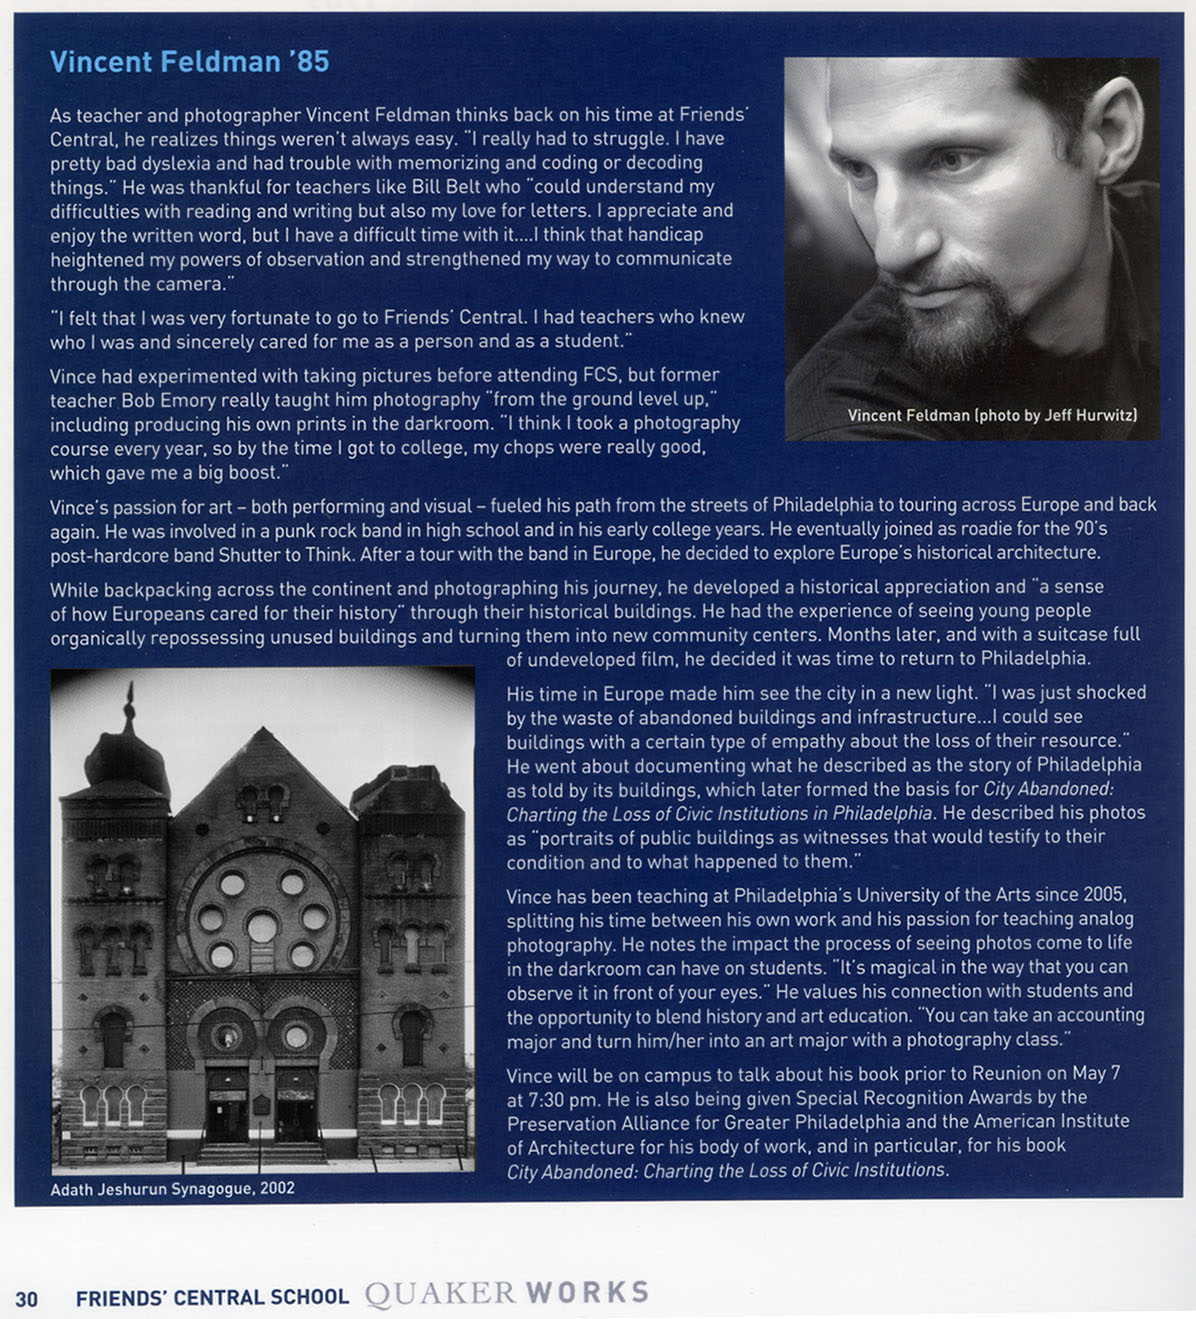 From Quaker Works, Spring 2015, The Magazine of Friends' Central School.